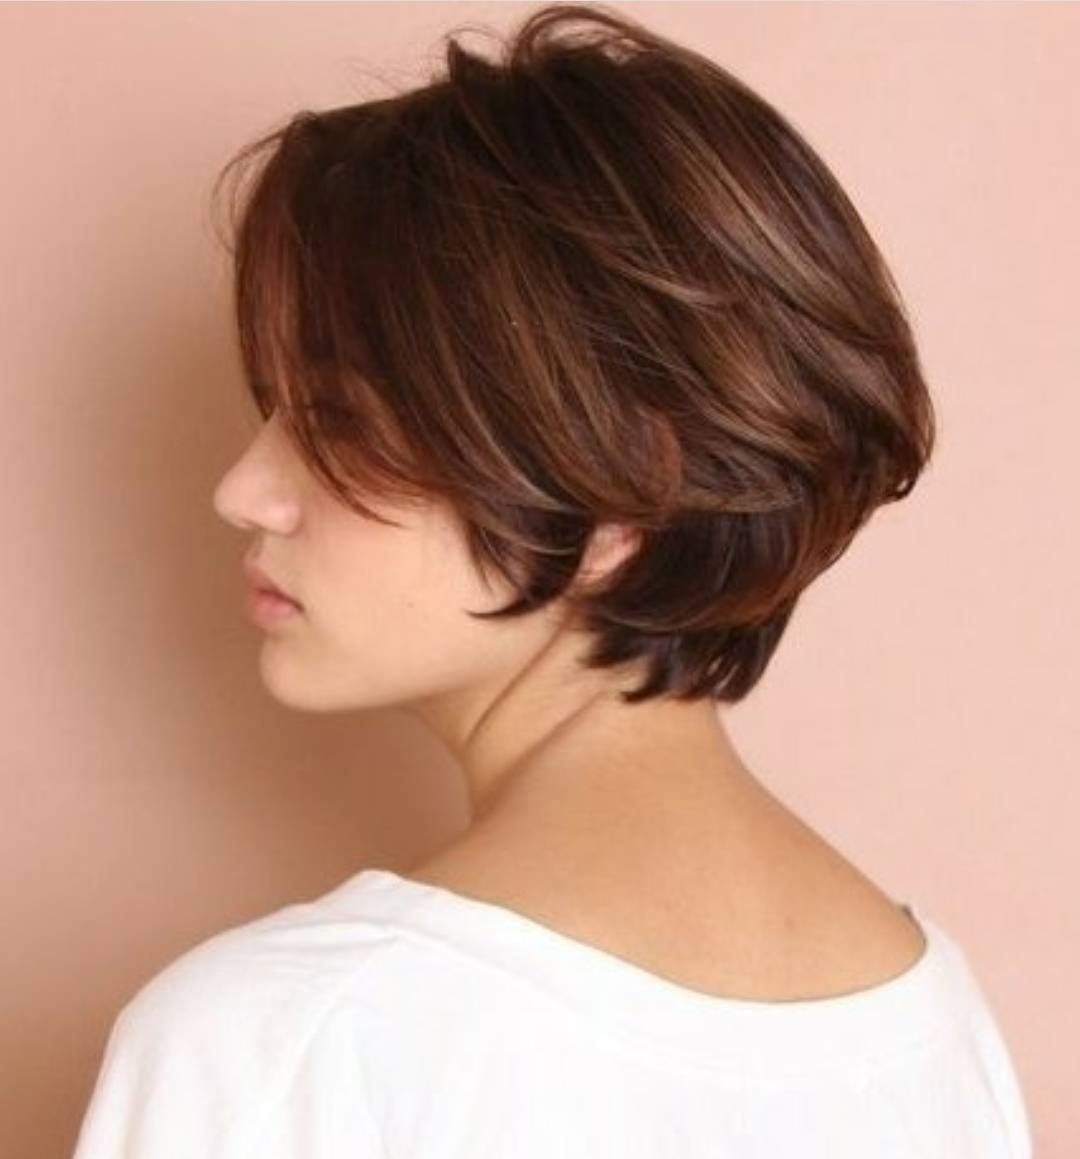 11 Chic Short Bob Haircuts That Balance Your Face Shape!